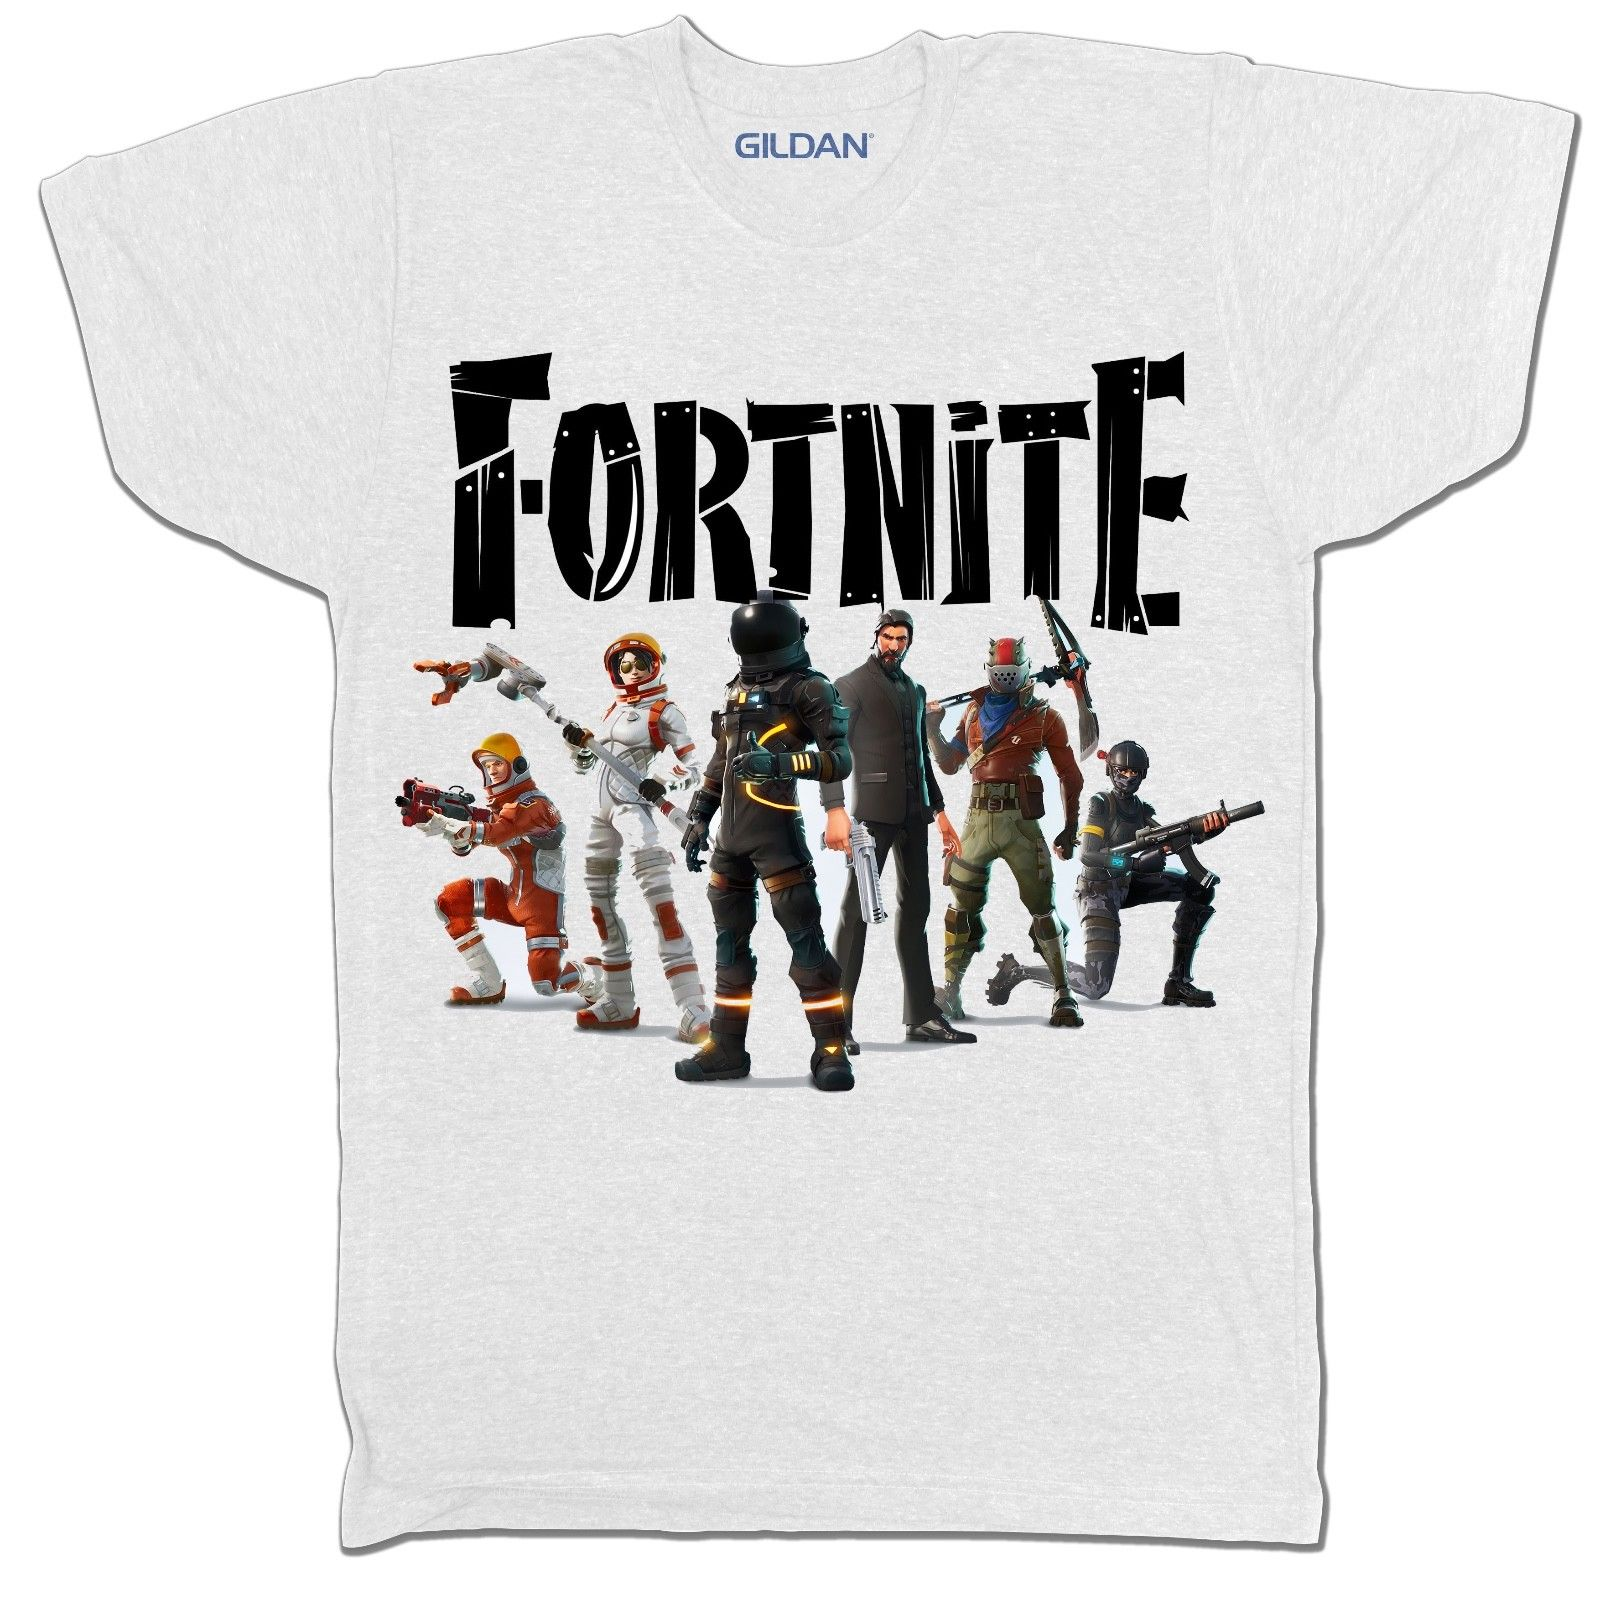 FORTNITE INSPIRED GAMING GAMER FILM MOVIE MENS CONSOLE T SHIRT Tees Brand Clothing Funny T-Shirt Top Tee Hot Cheap MenS